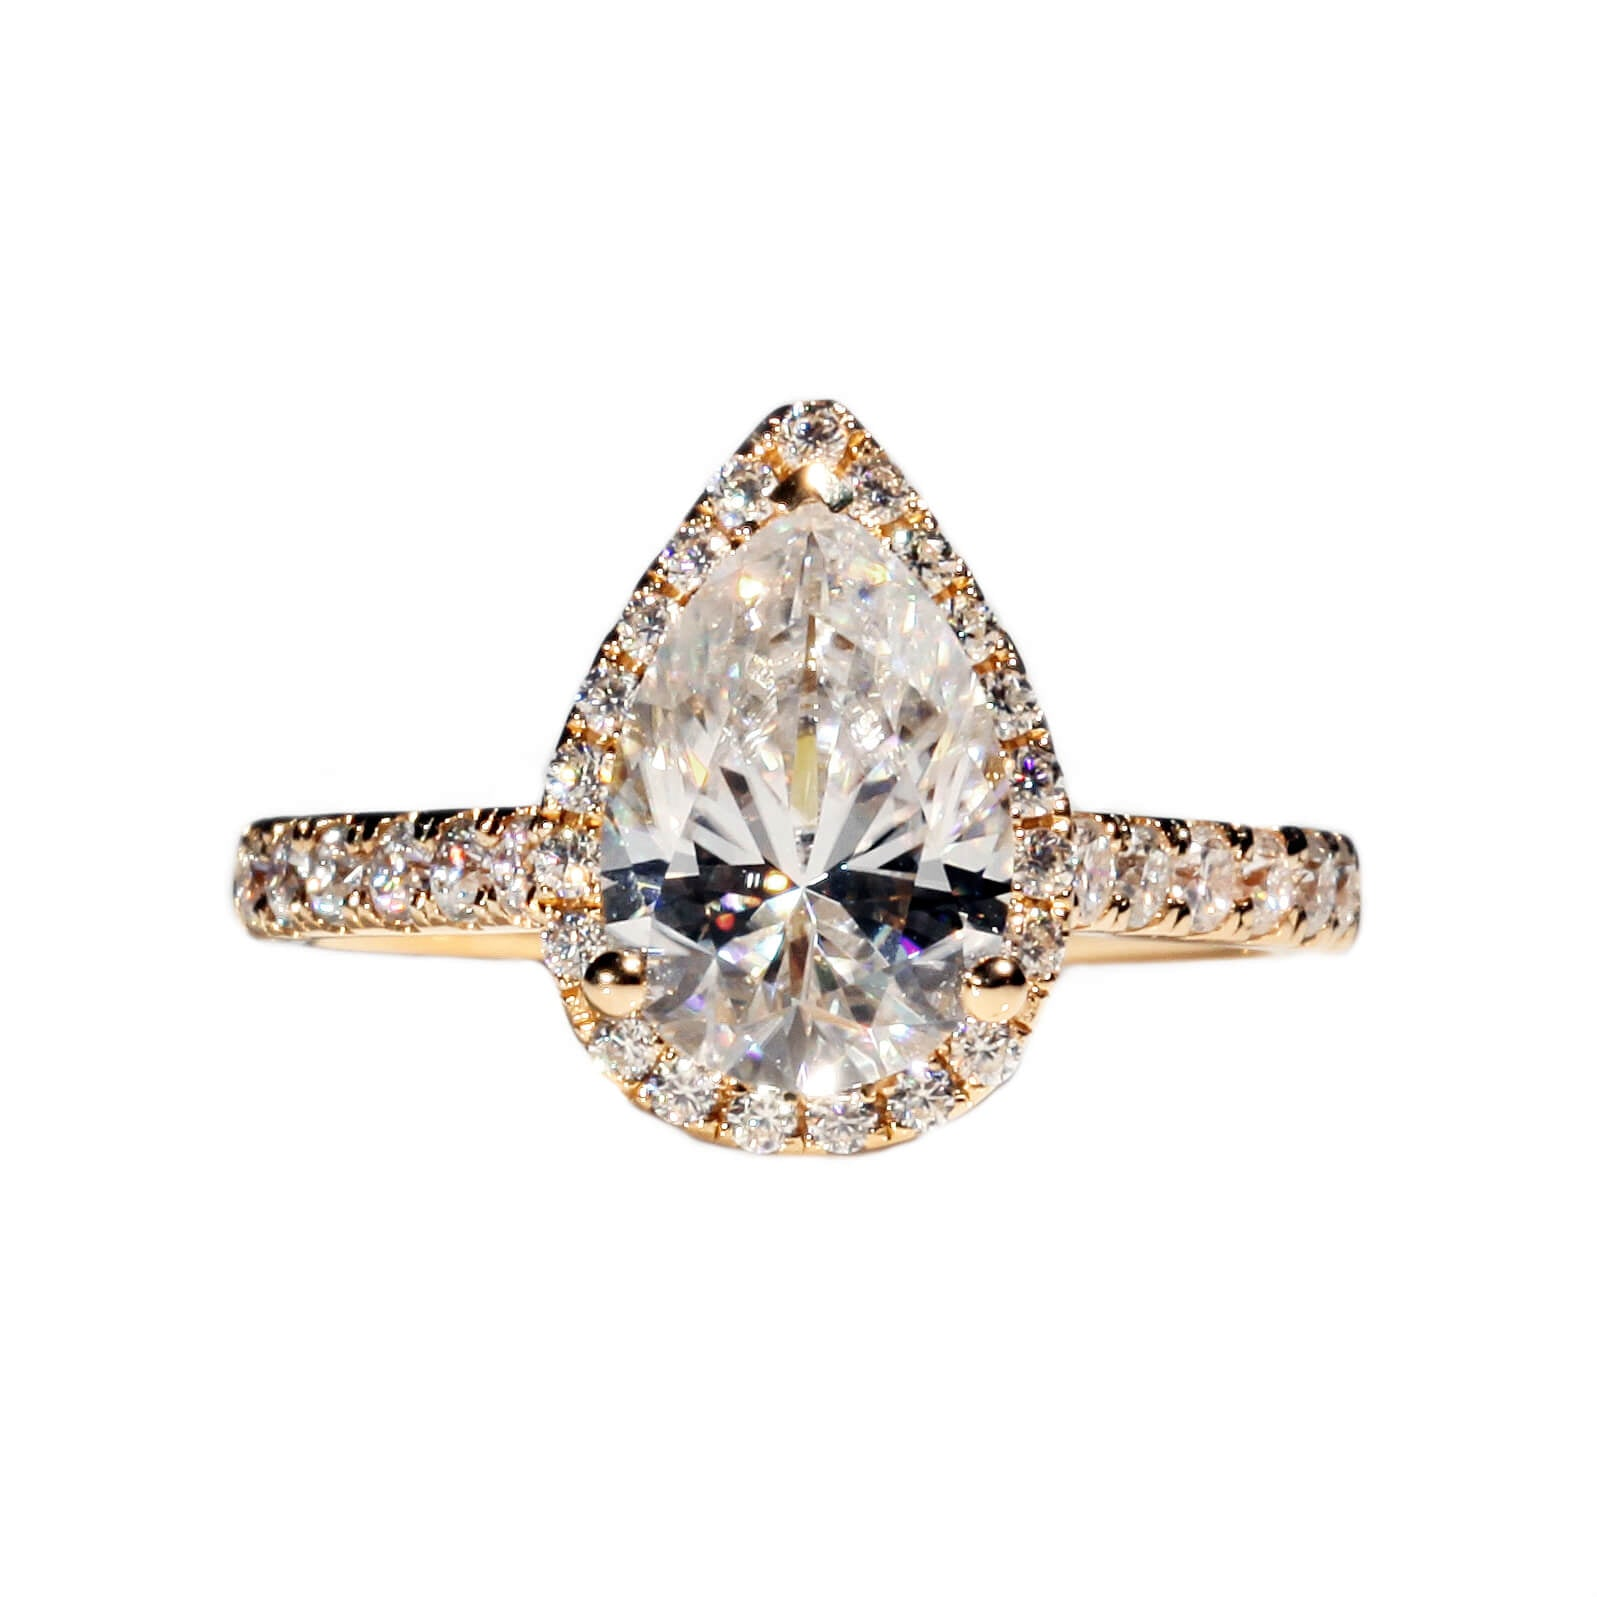 Ready Made | 2.5 Carat Pear-Cut Teardrop Moissanite Halo Ring - LeCaine Gems